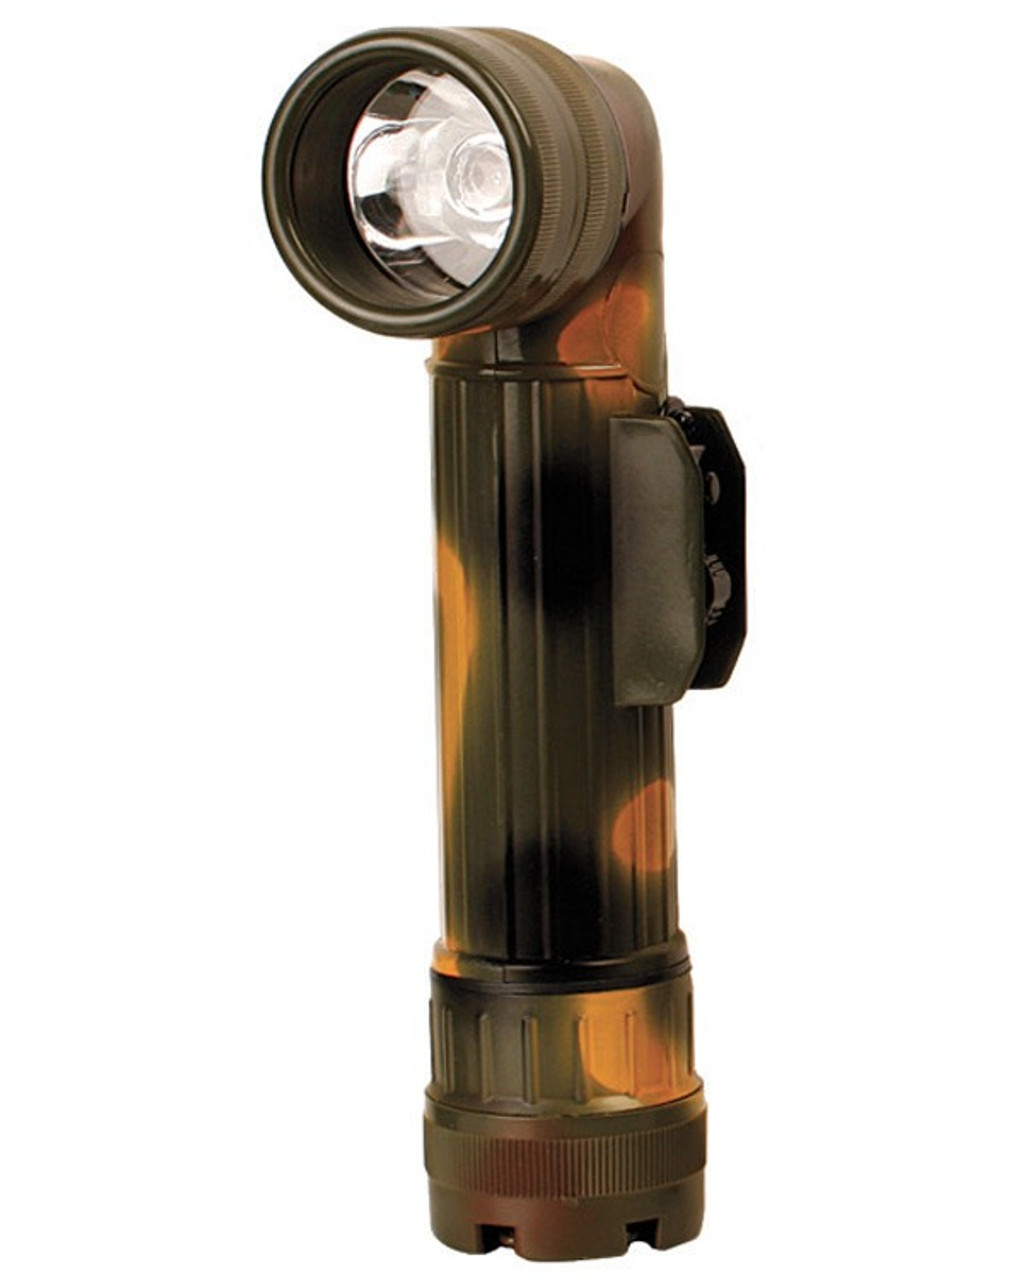 Large Angle Torch - Camo